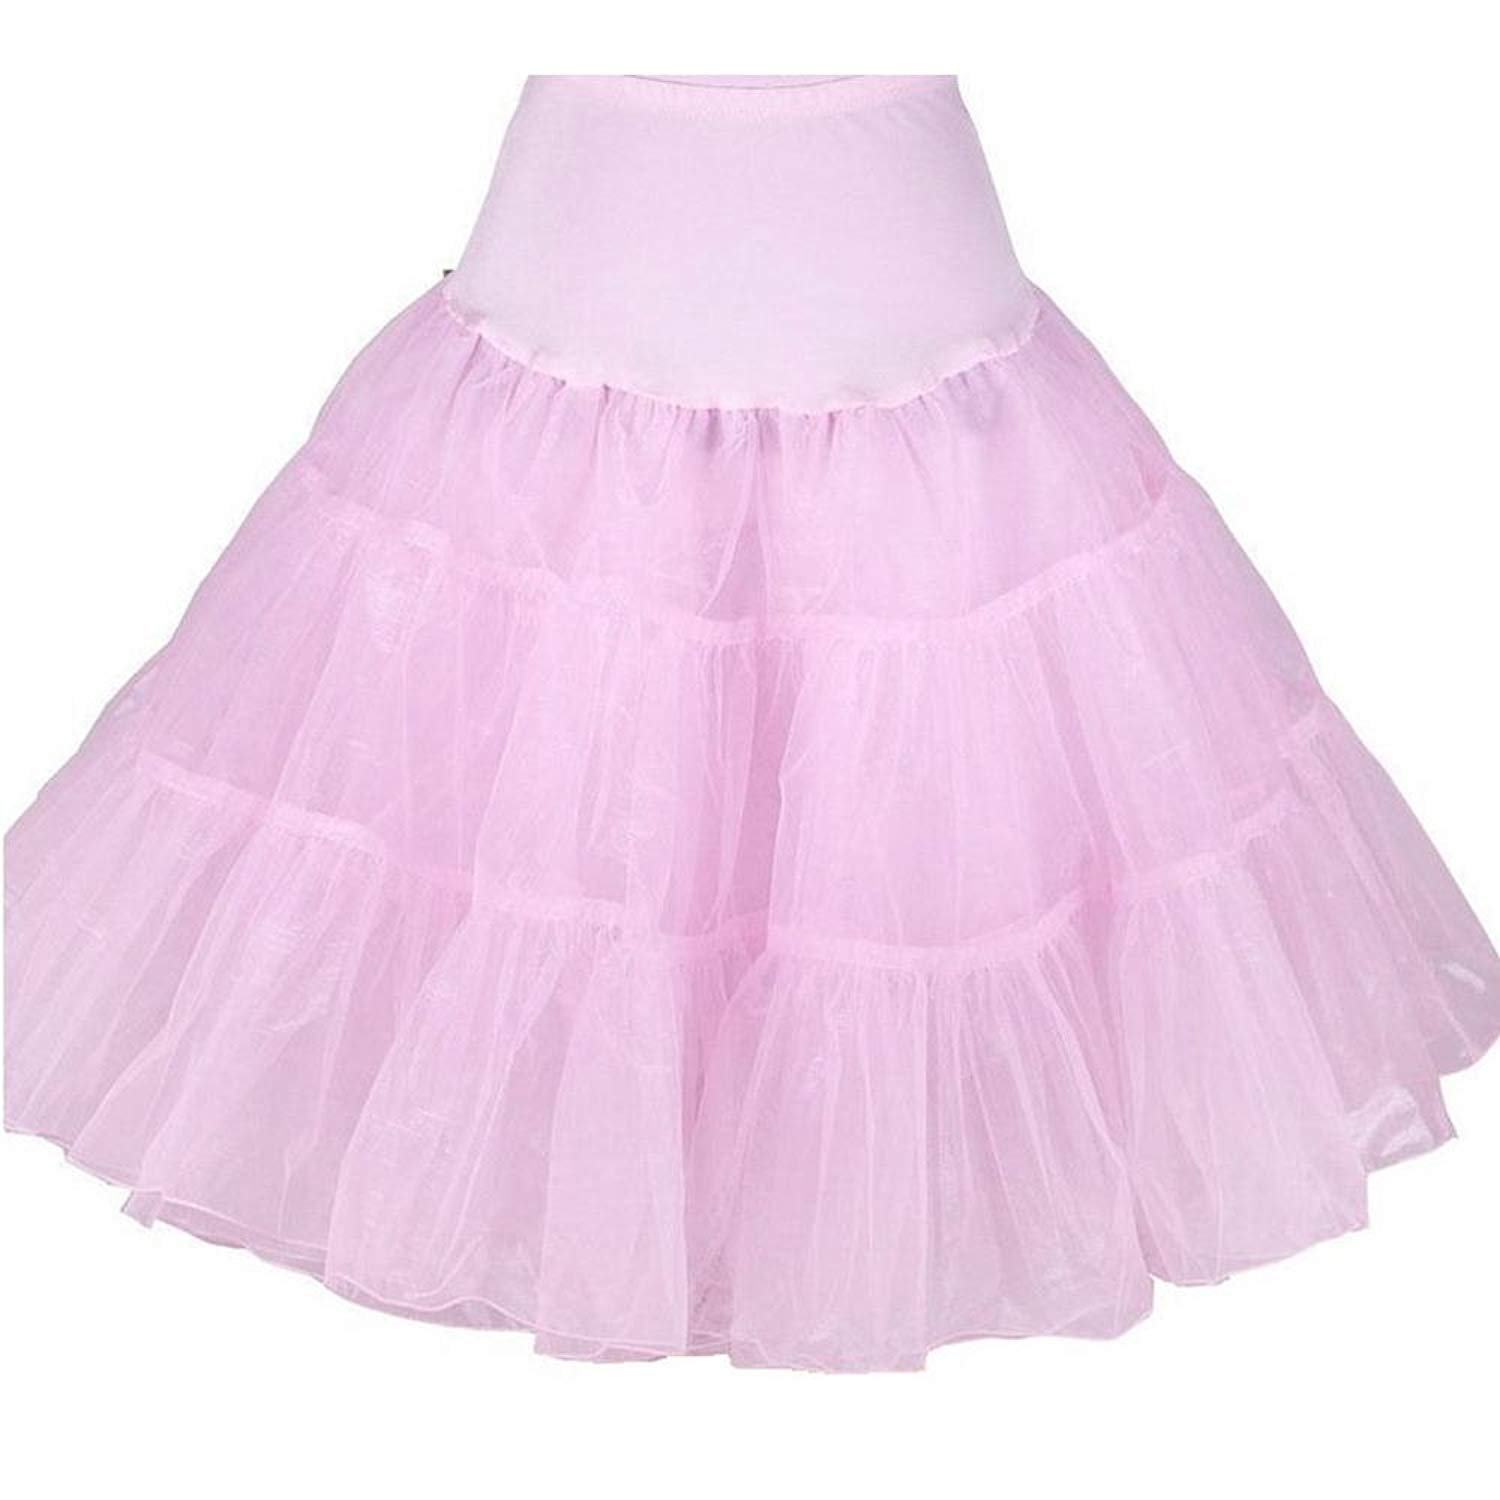 1fb618d89 Cheap Toddler Petticoat Skirts, find Toddler Petticoat Skirts deals ...